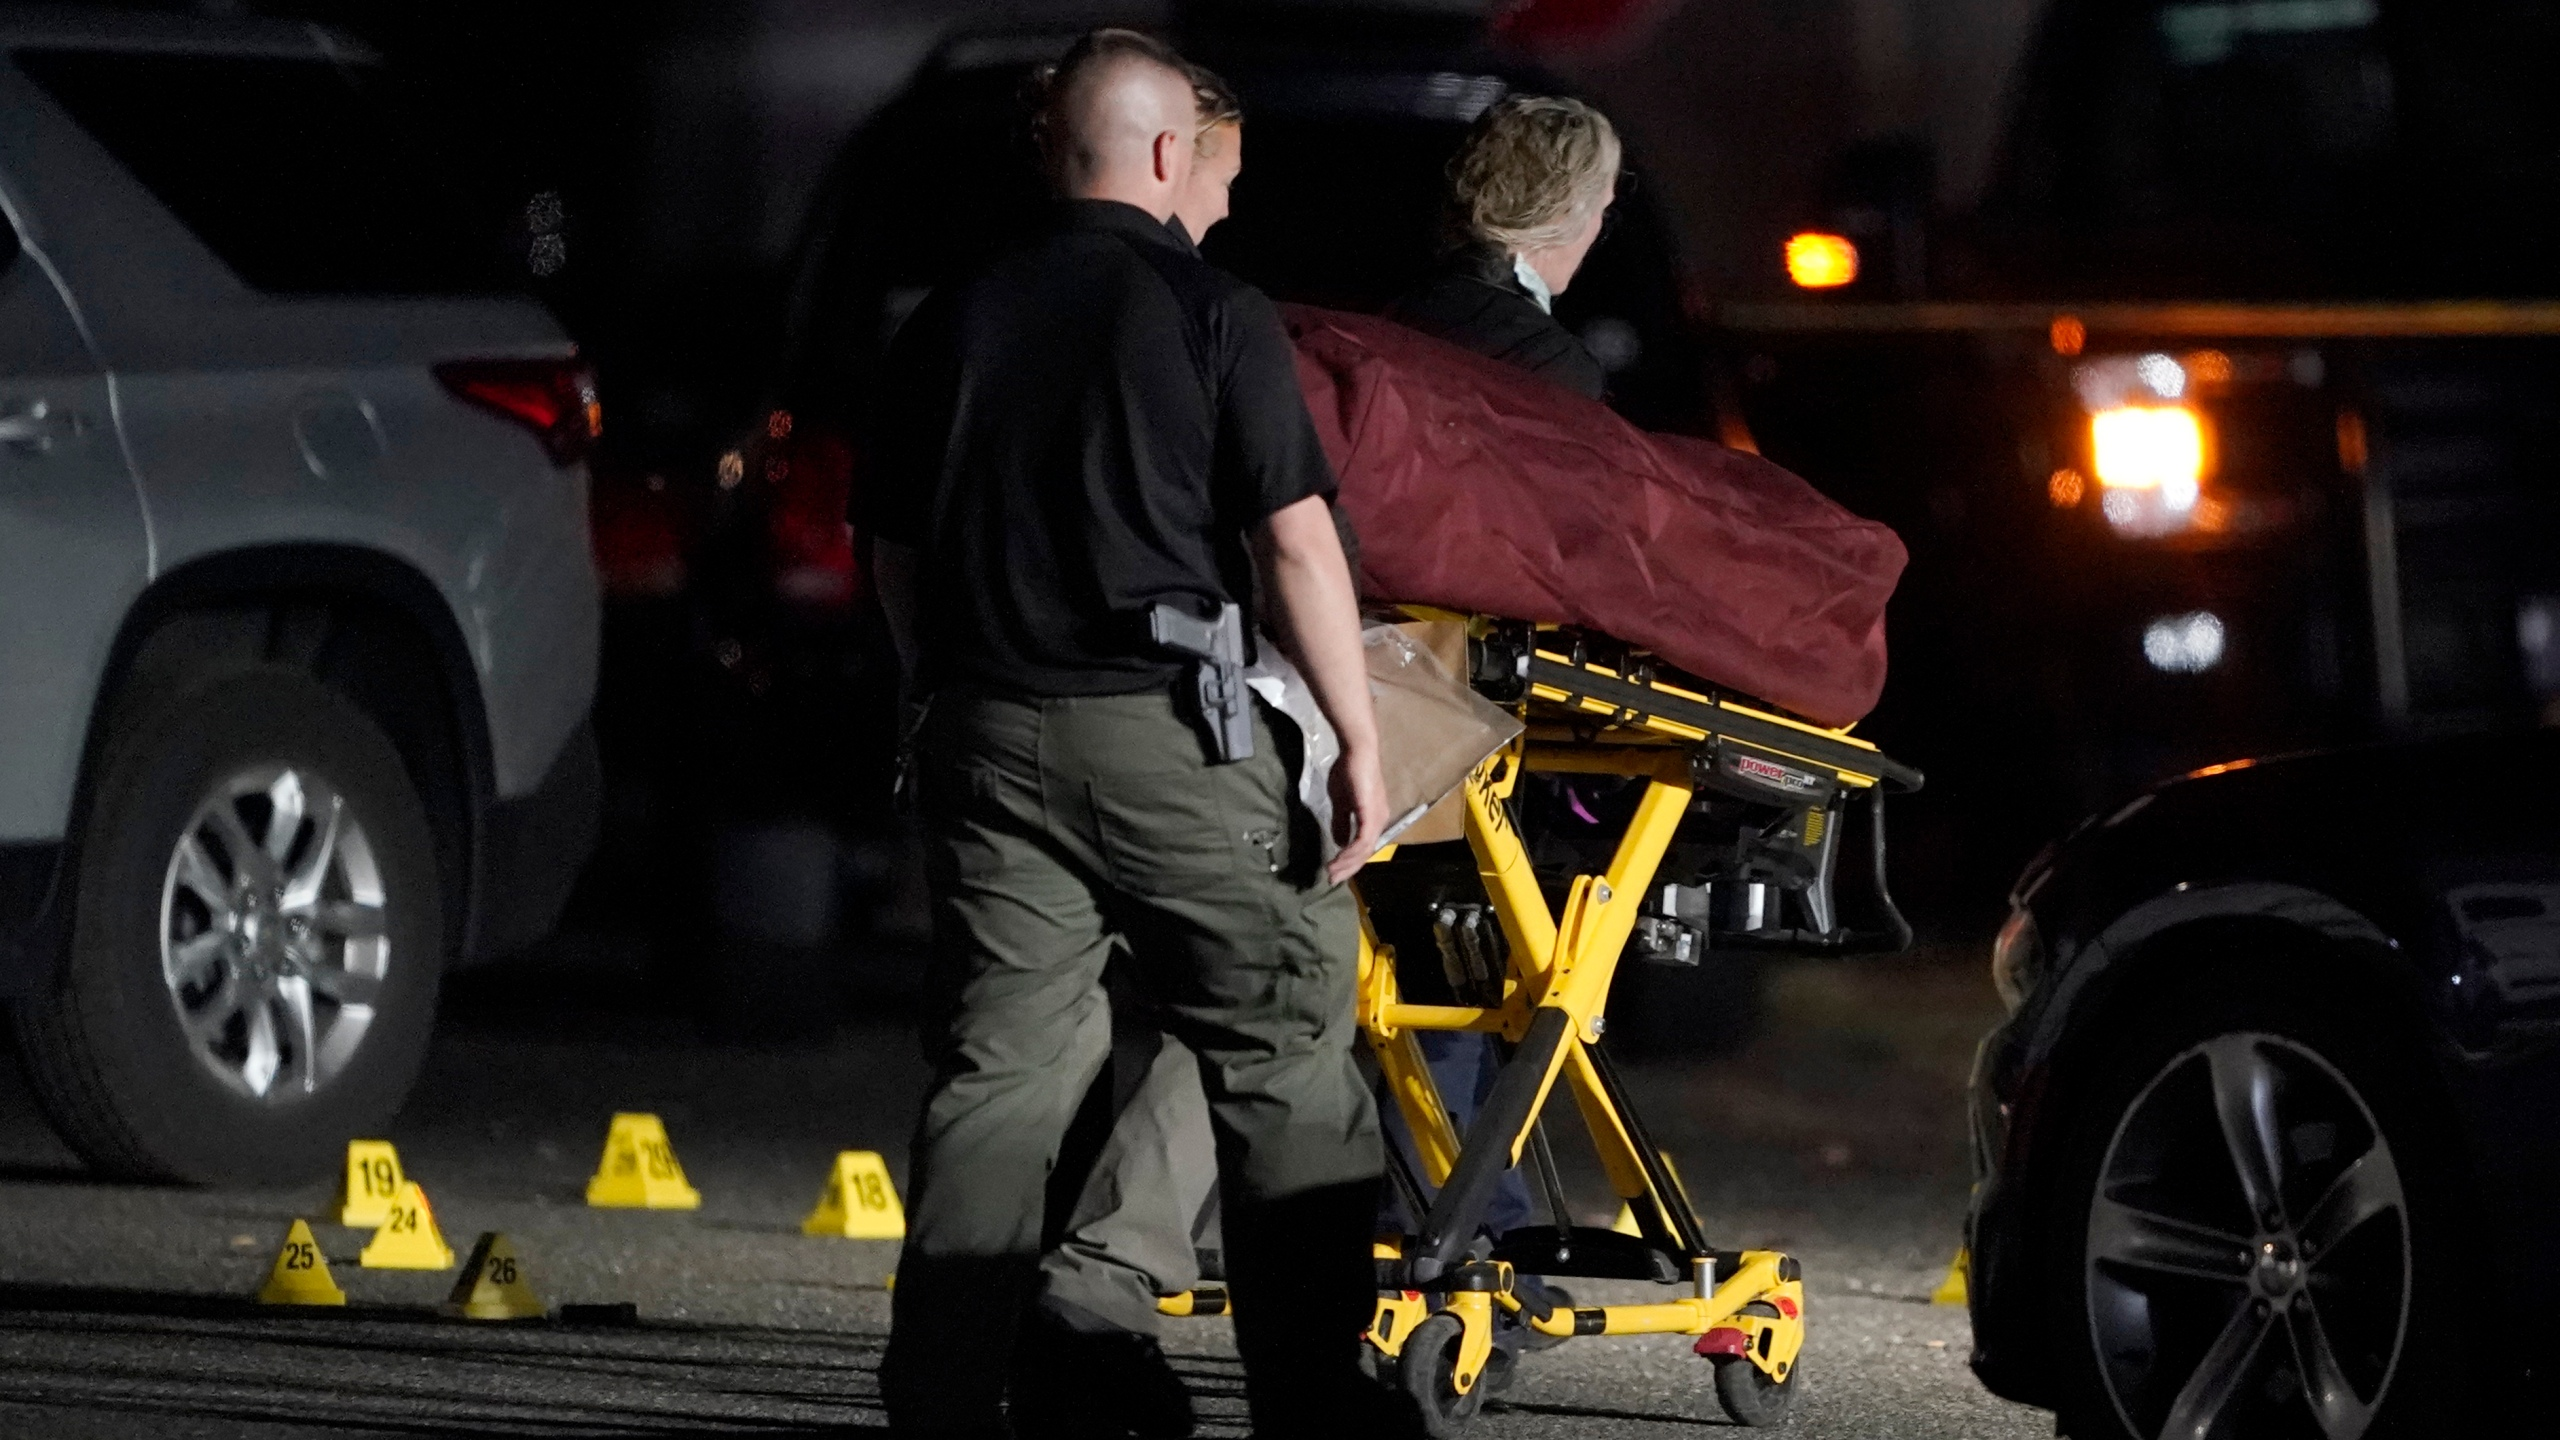 The body of Michael Reinoehl is taken away on a stretcher in the early morning hours of Sept. 4, 2020, in Lacey, Washington. (Ted S. Warren / Associated Press)